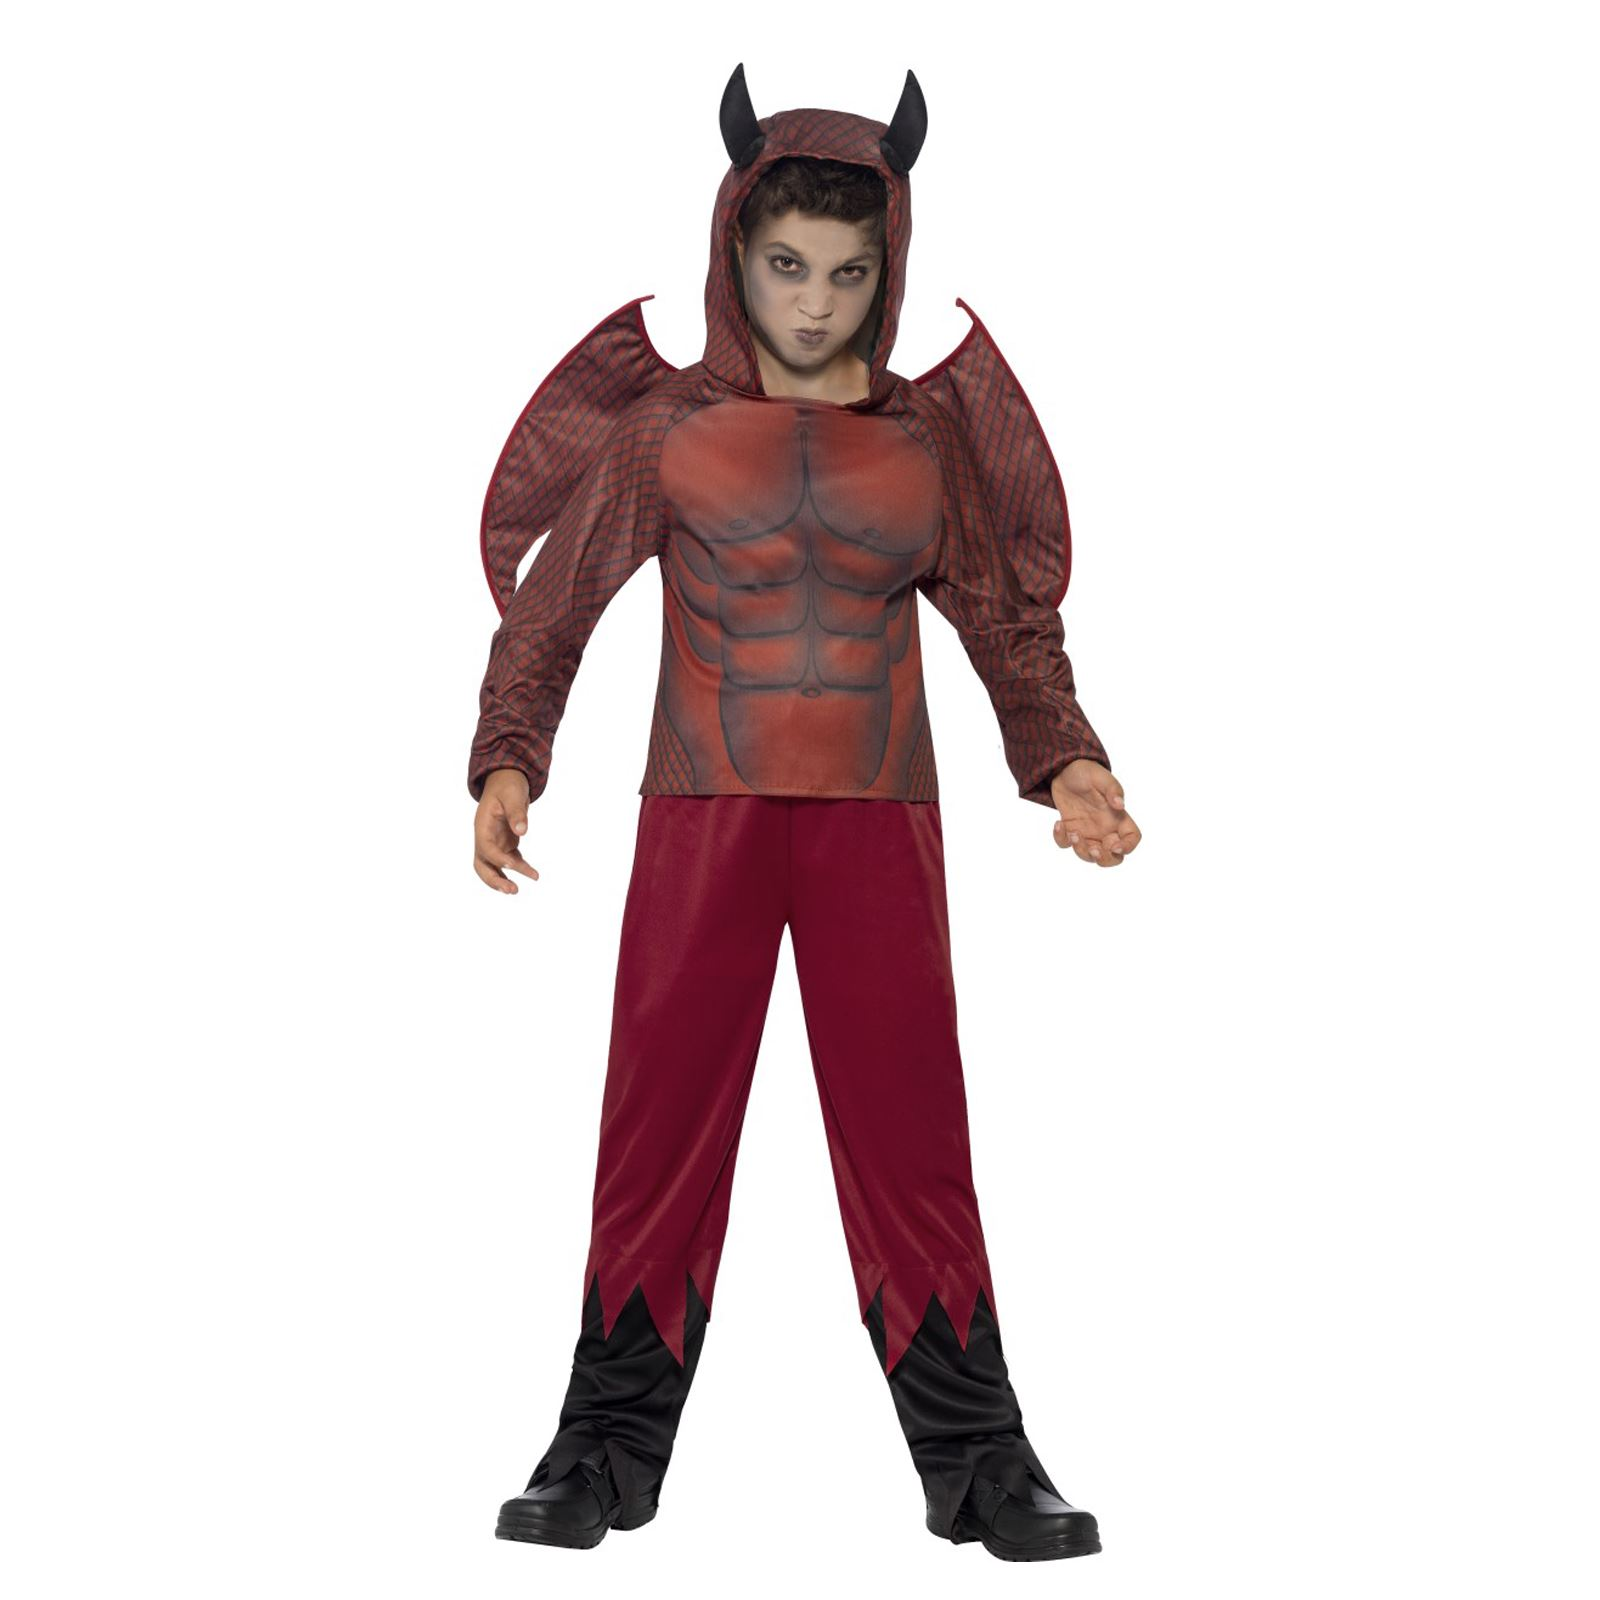 Lucifer Zombie Wedding: Kids Boys Deluxe Red Devil Costume Wings Horns Scary Satan